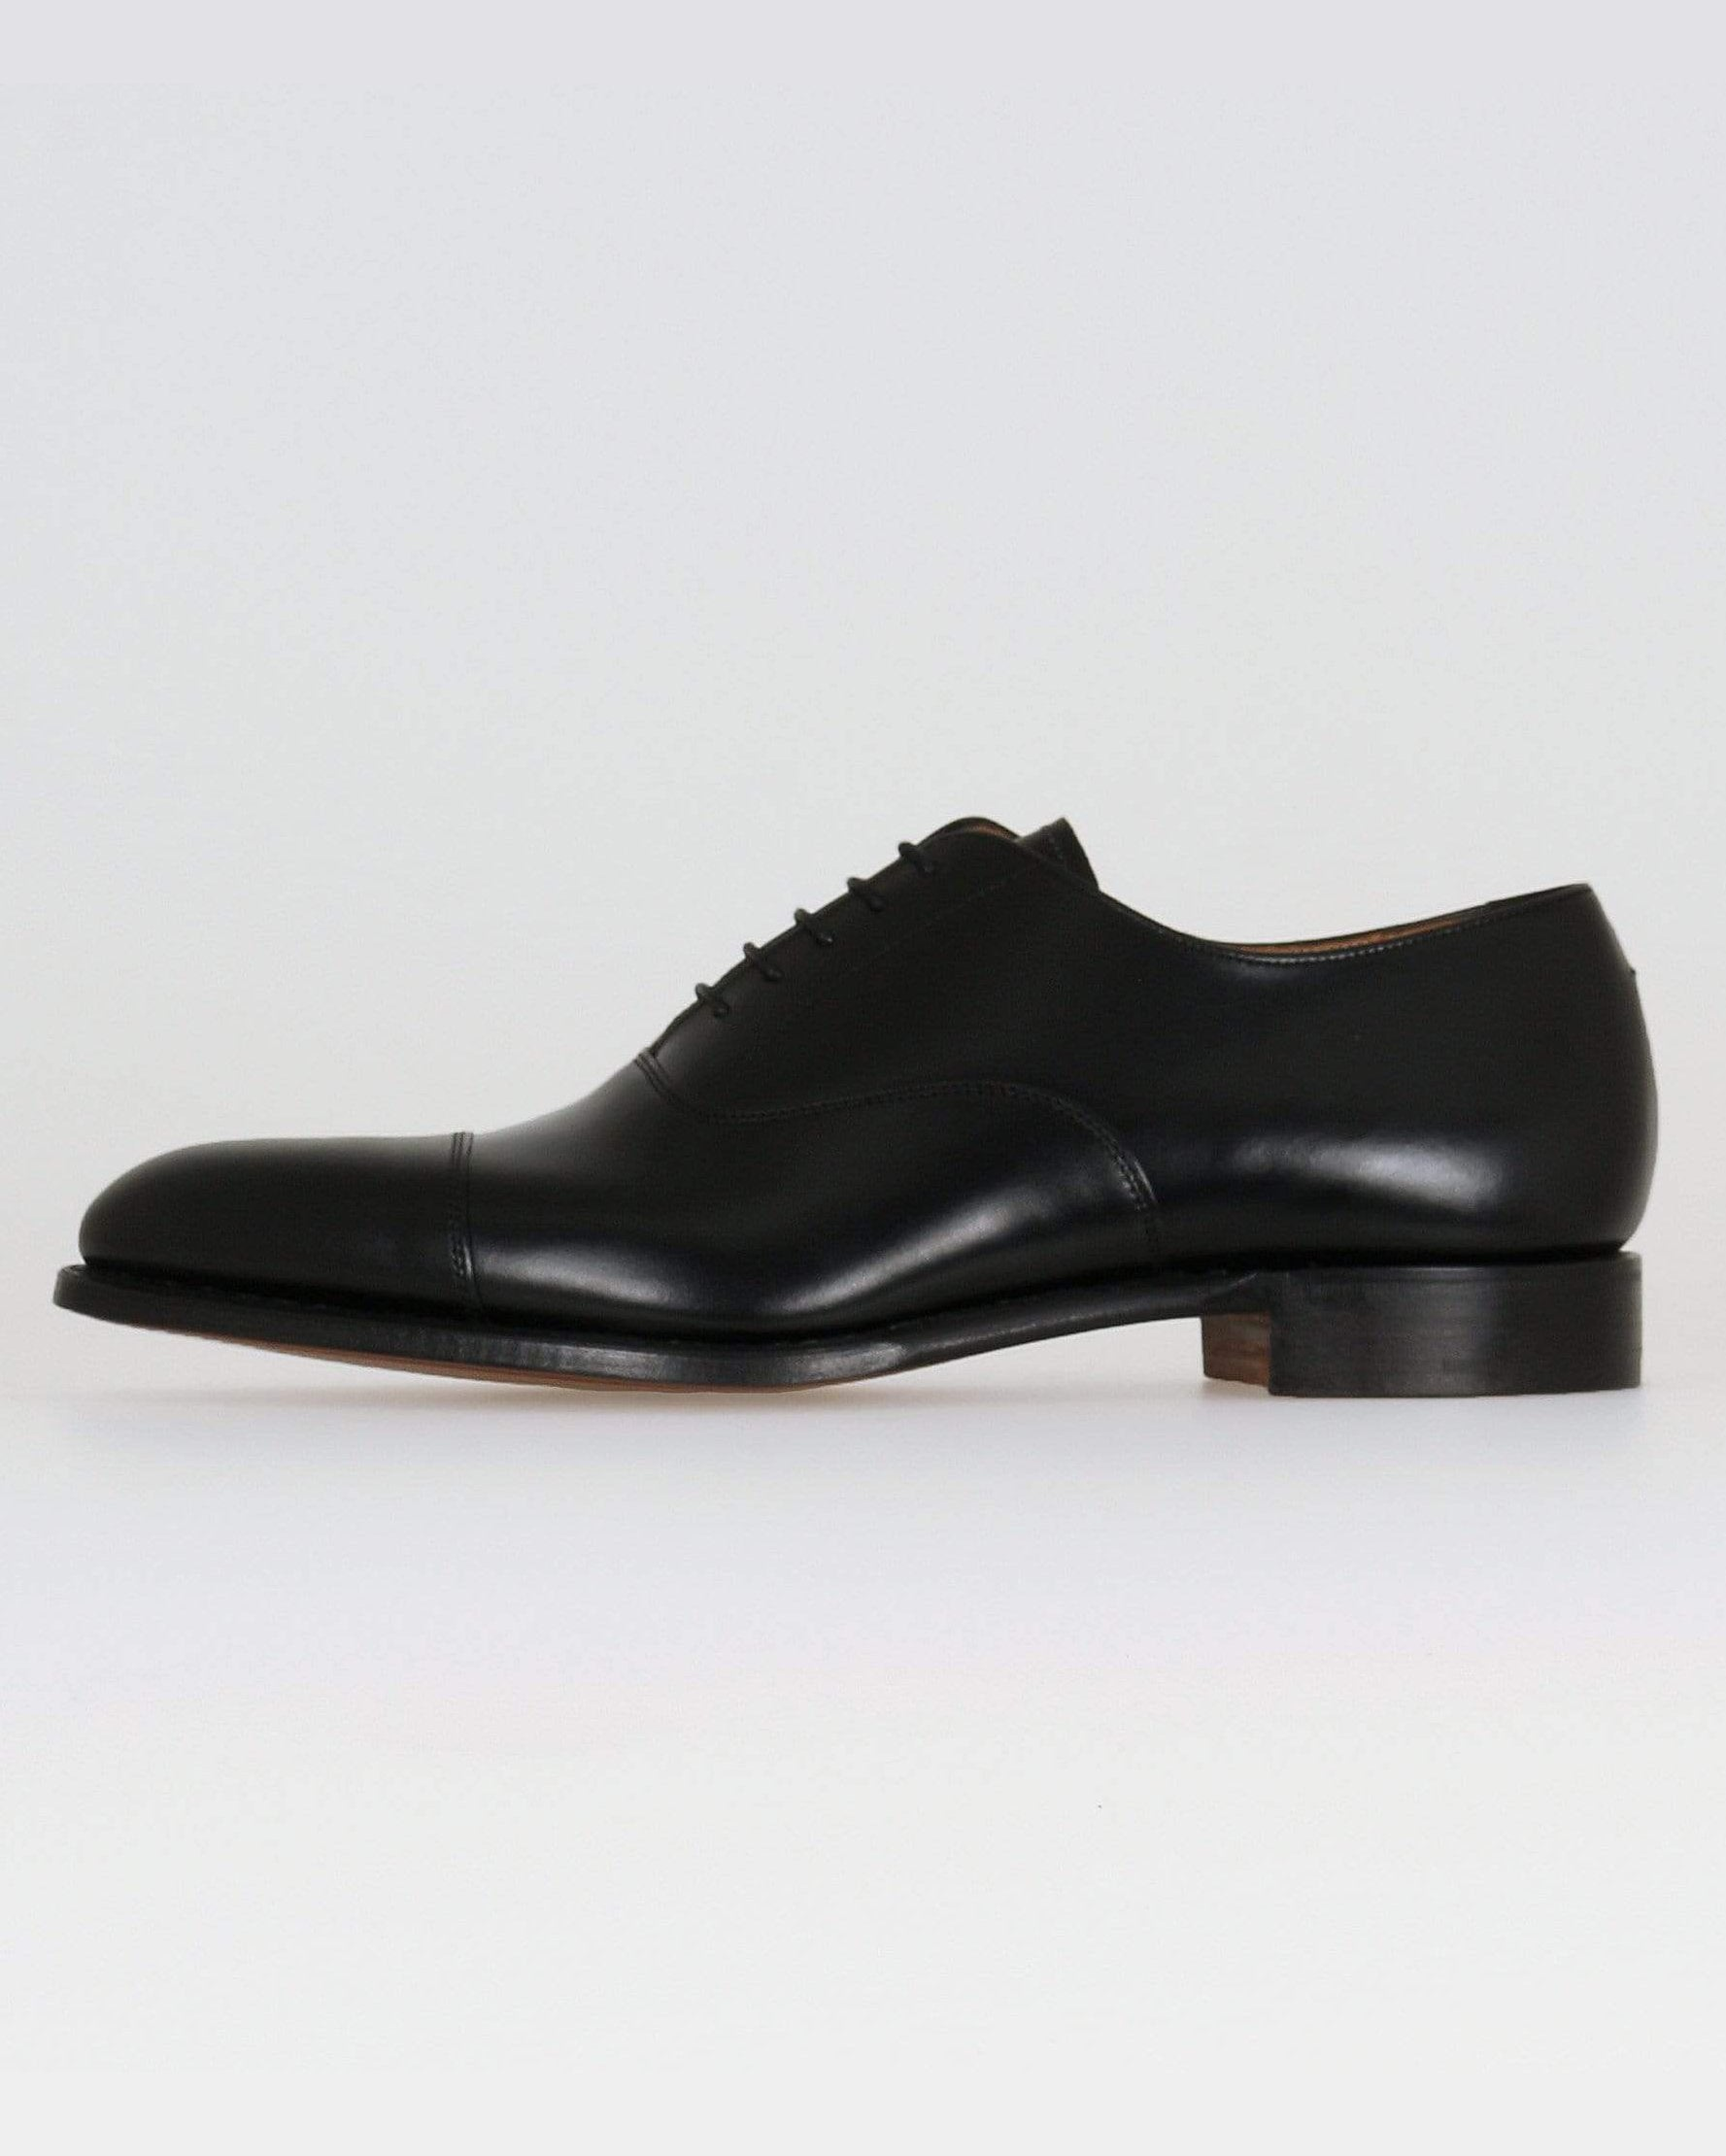 Cheaney Lime Classic Oxford Shoe - Black Calf Leather UK 7 1001017 5056177041167 Cheaney Shoes Shoes